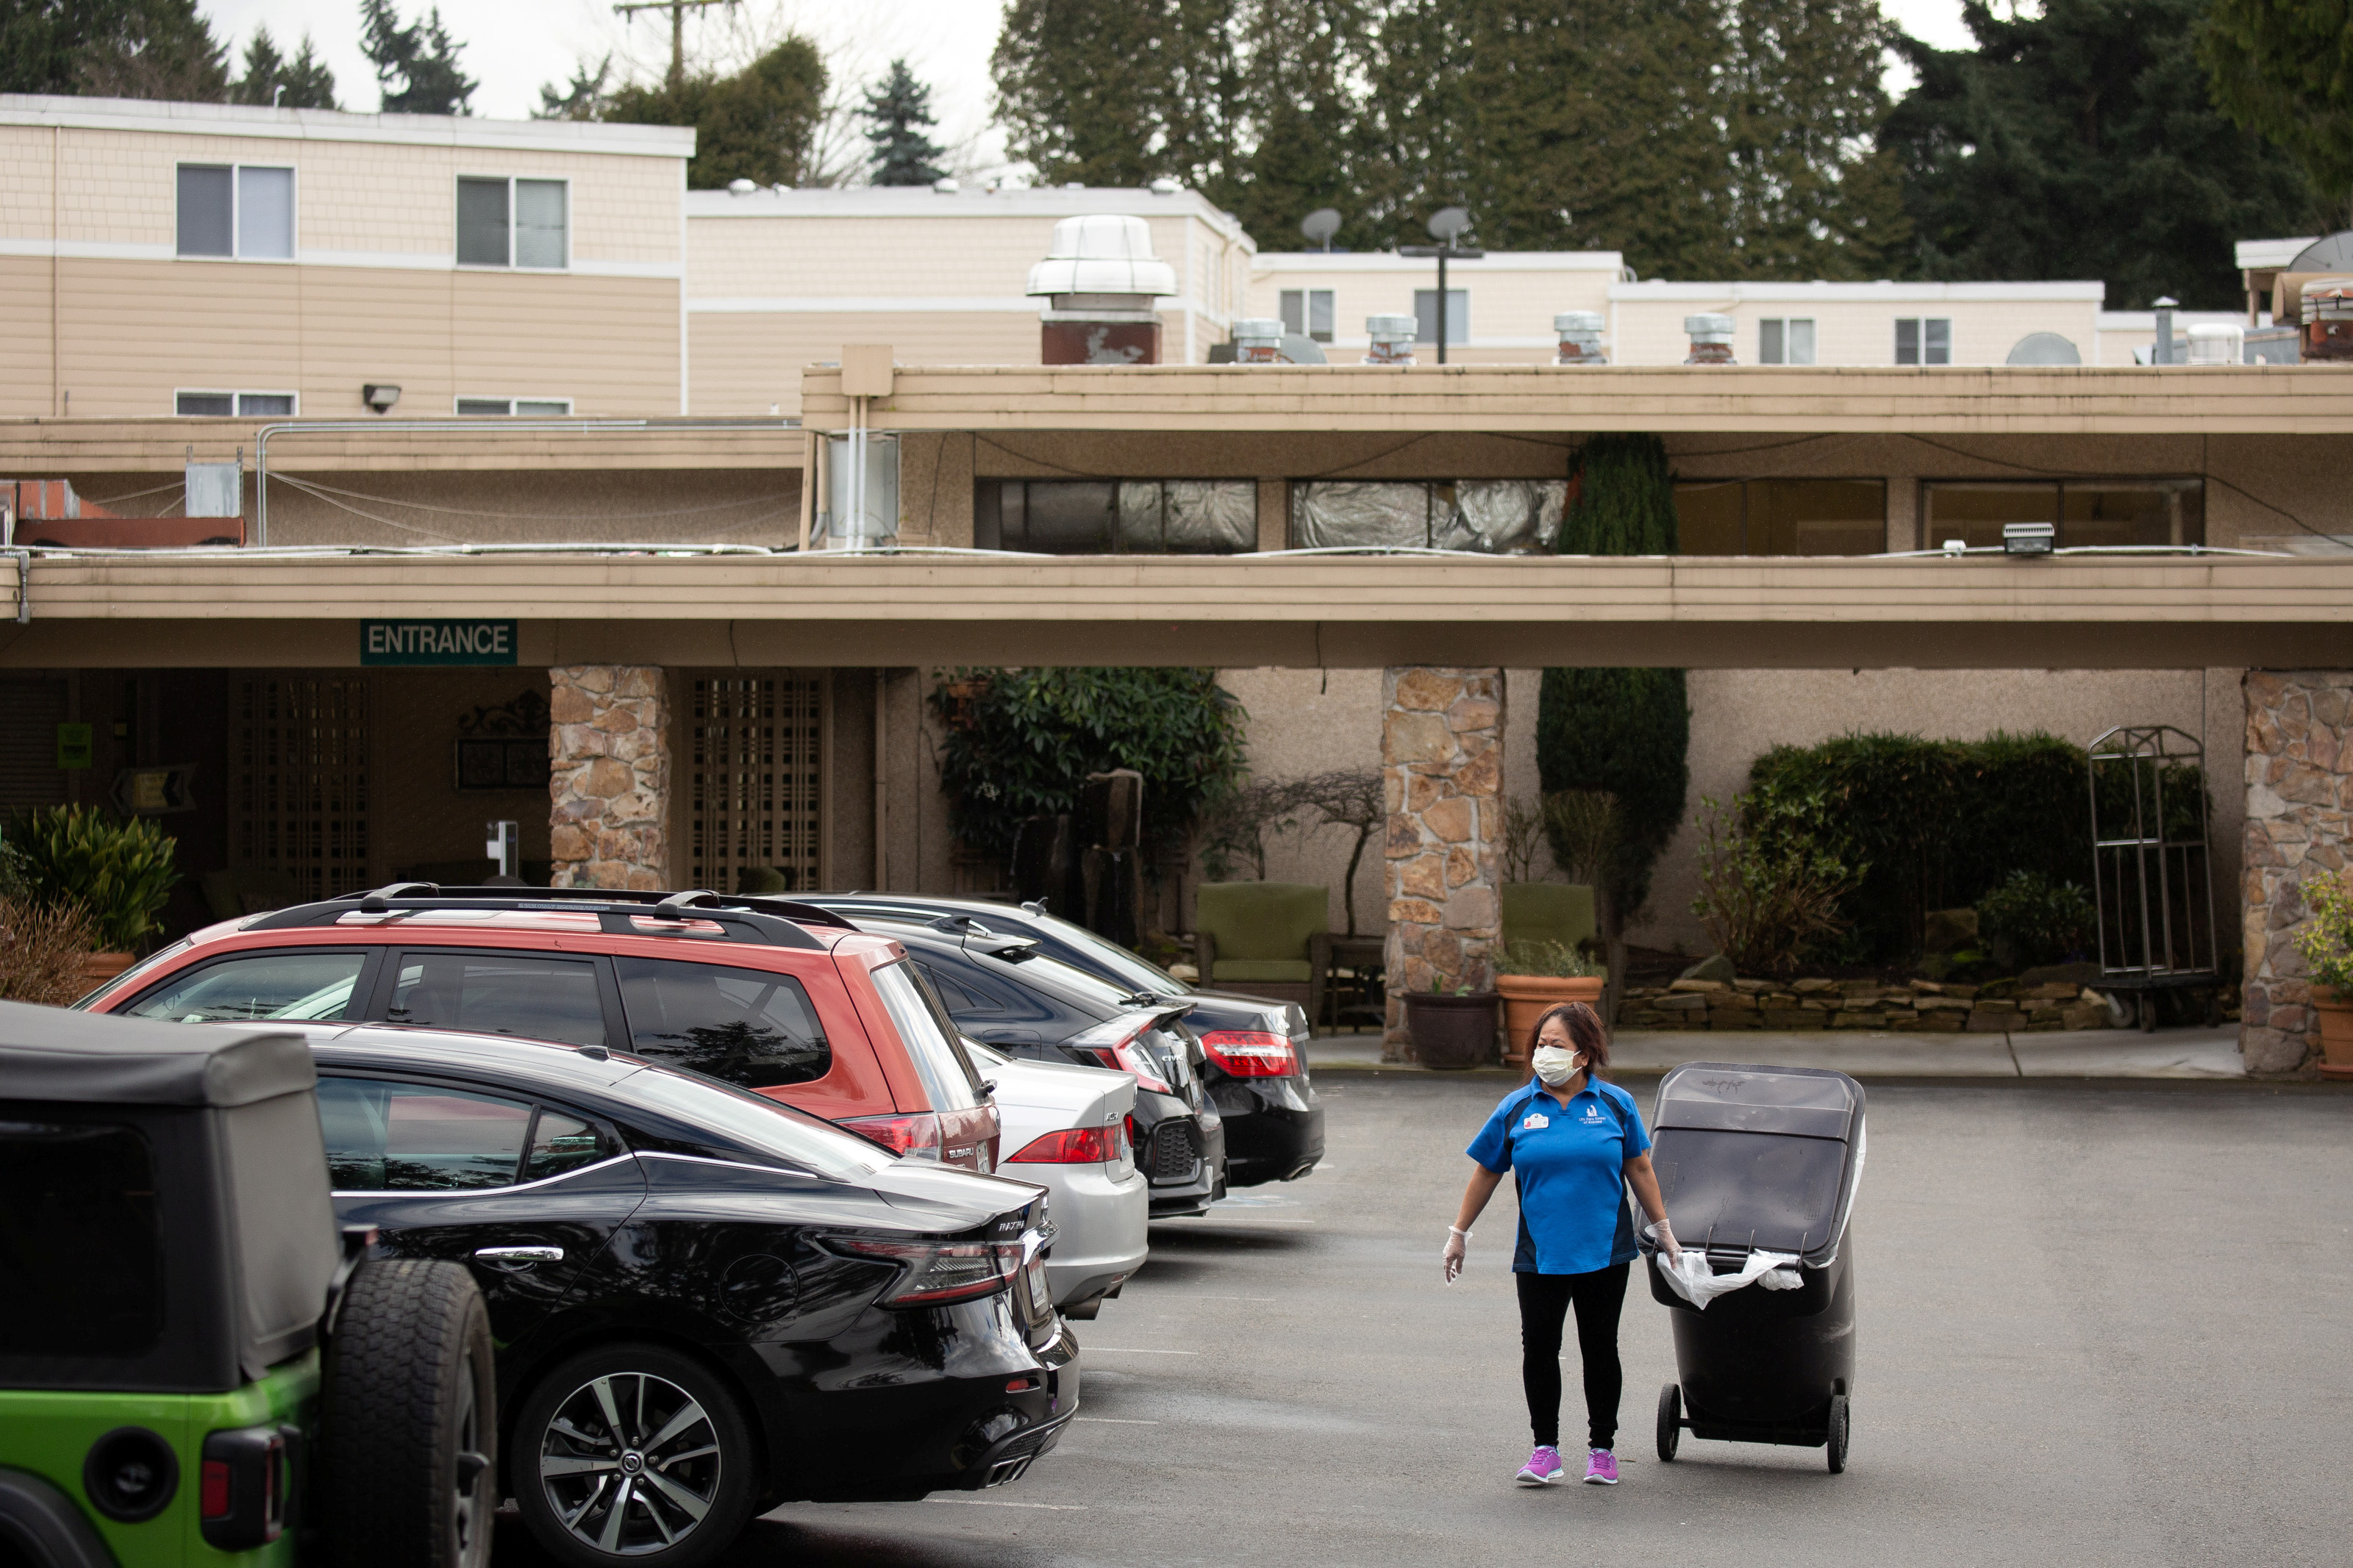 A worker carries a garbage can while wearing a mask at the Life Care Center of Kirkland, where two of three confirmed coronavirus cases in the state had links to the long-term care facility in Kirkland, Washington, U.S. March 1, 2020. REUTERS/David Ryder